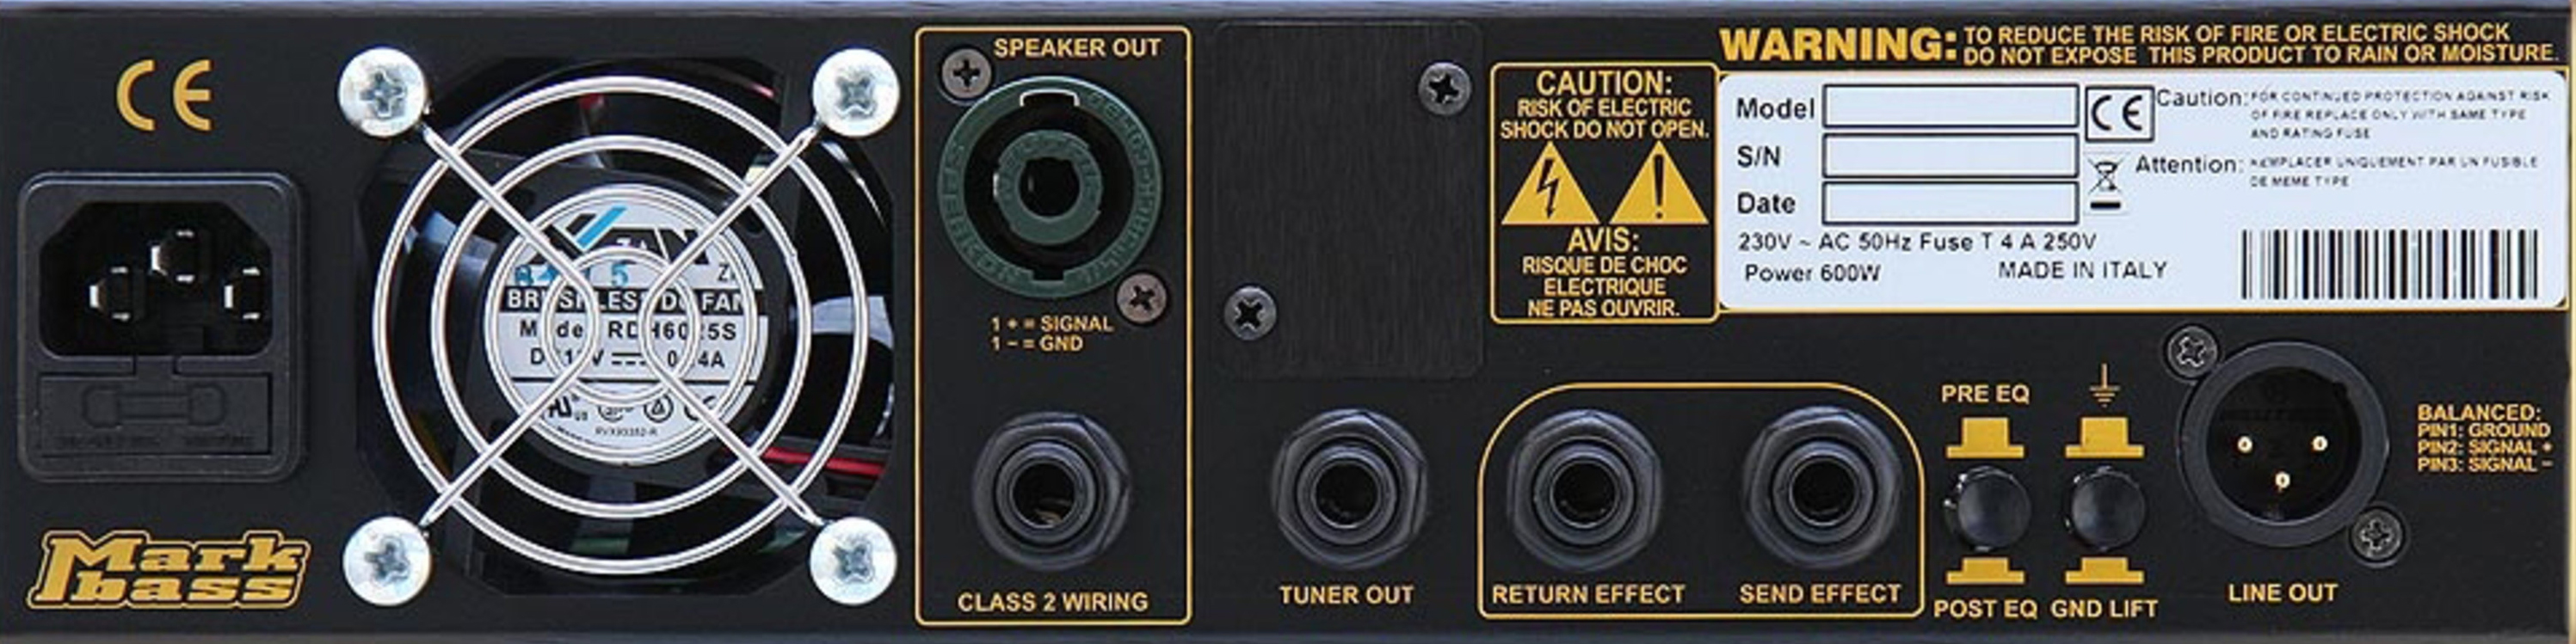 MARKBASS CMD 151 JB LM3 Combo Rear Panel